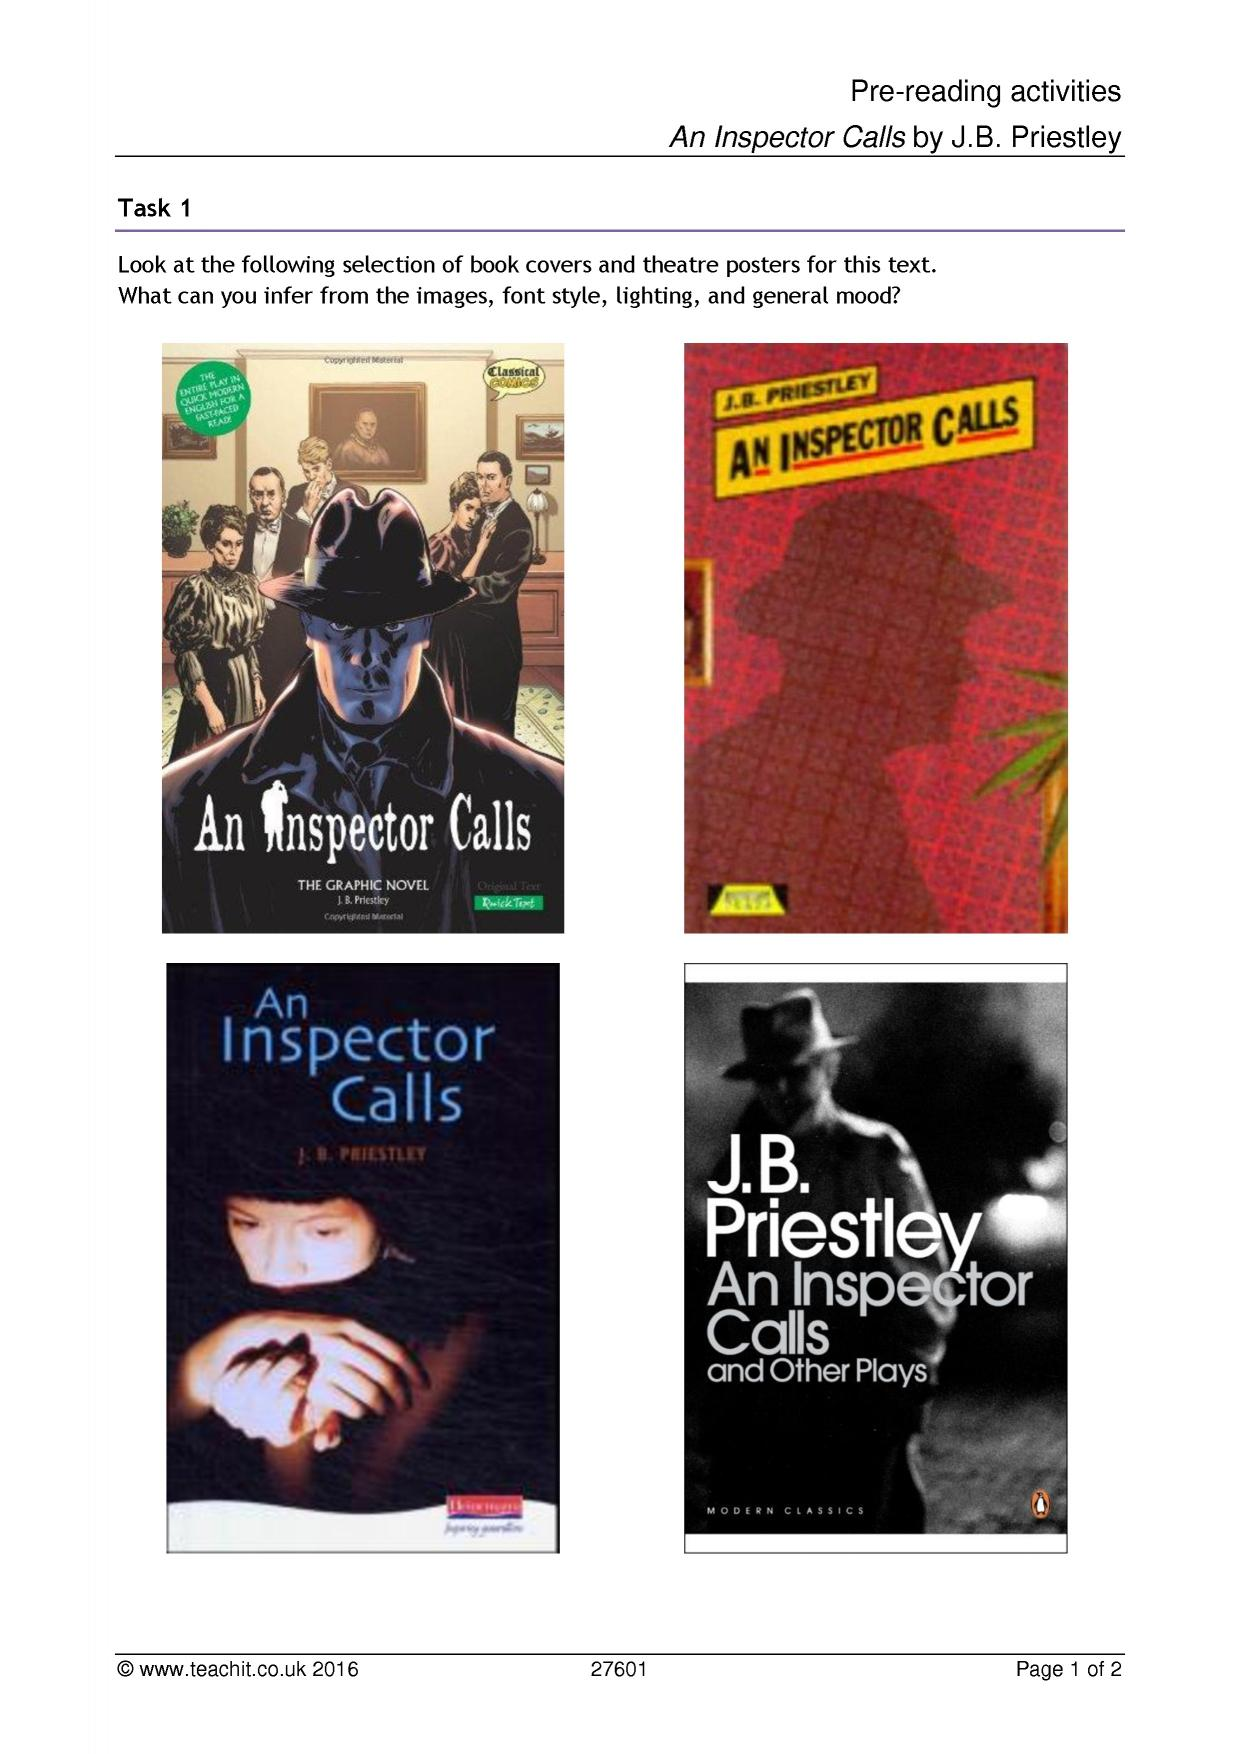 an inspector calls play by j.b. priestley essay Let us write or edit the essay on your topic an inspector calls by jb priestley with a personal 20% discount try it now at the beginning of the play, mr birling gave his restricted view of responsibility in a extensive dialogue.